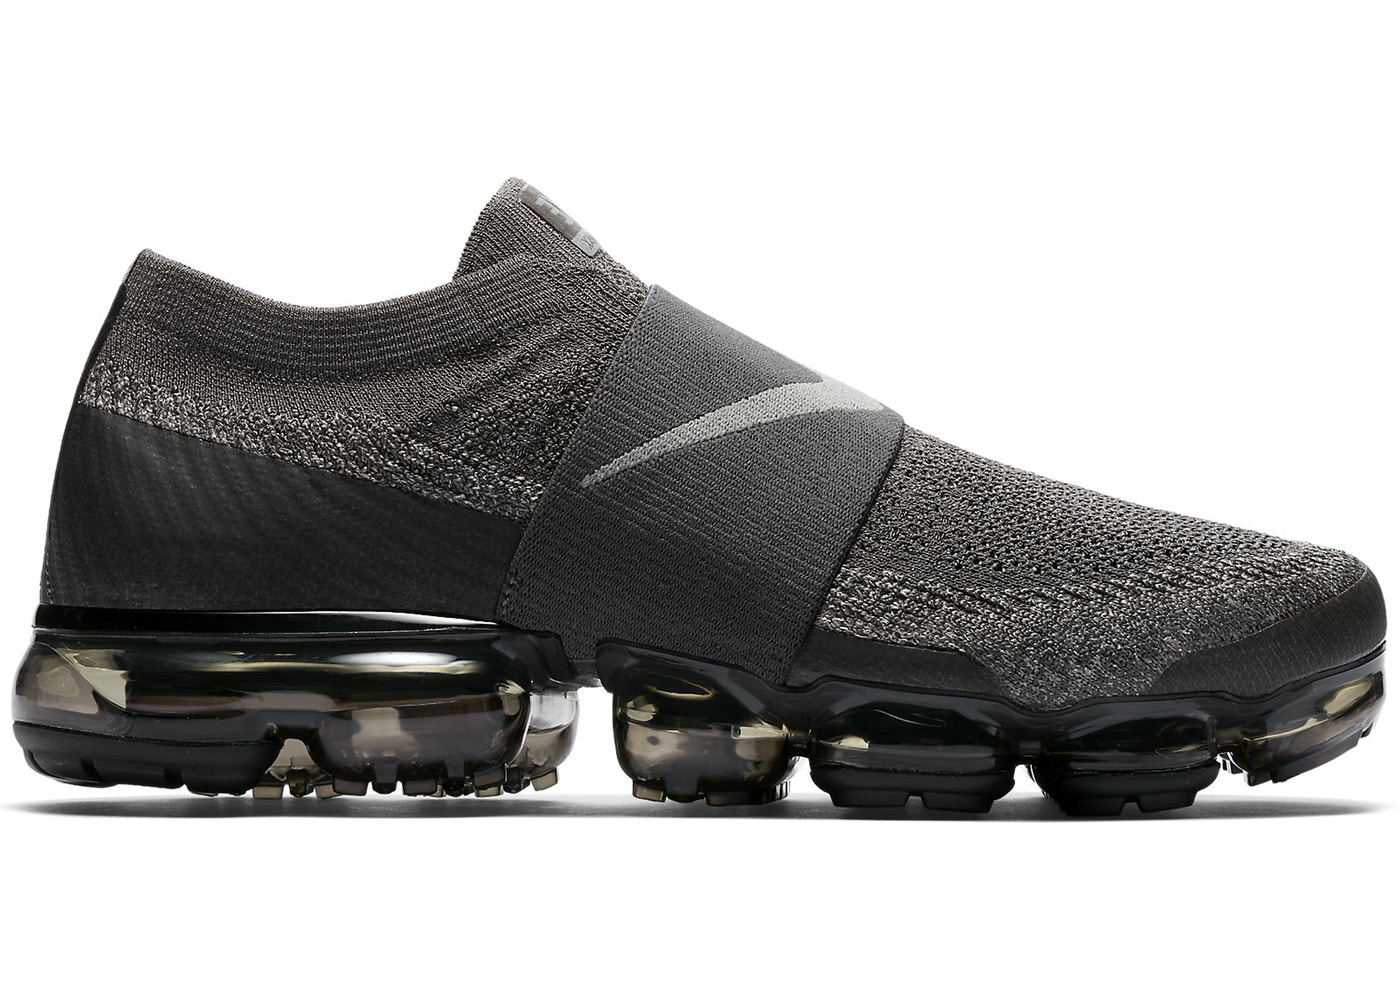 reputable site 3f0a0 c4b99 Air VaporMax Moc Midnight Fog